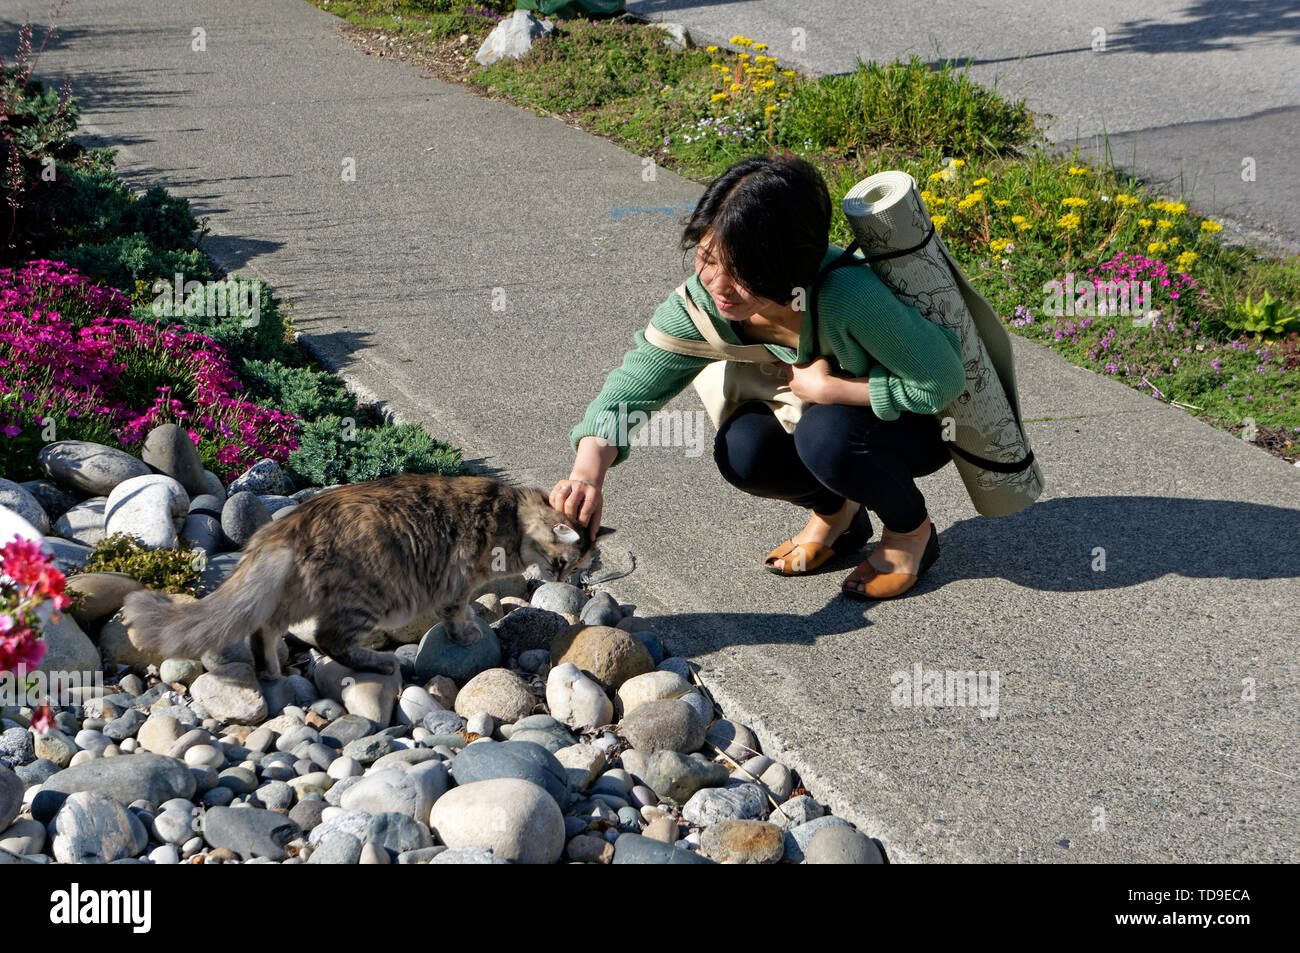 Young Asian woman squatting on the sidewalk and petting a cat, Vancouver, BC, Canada - Stock Image